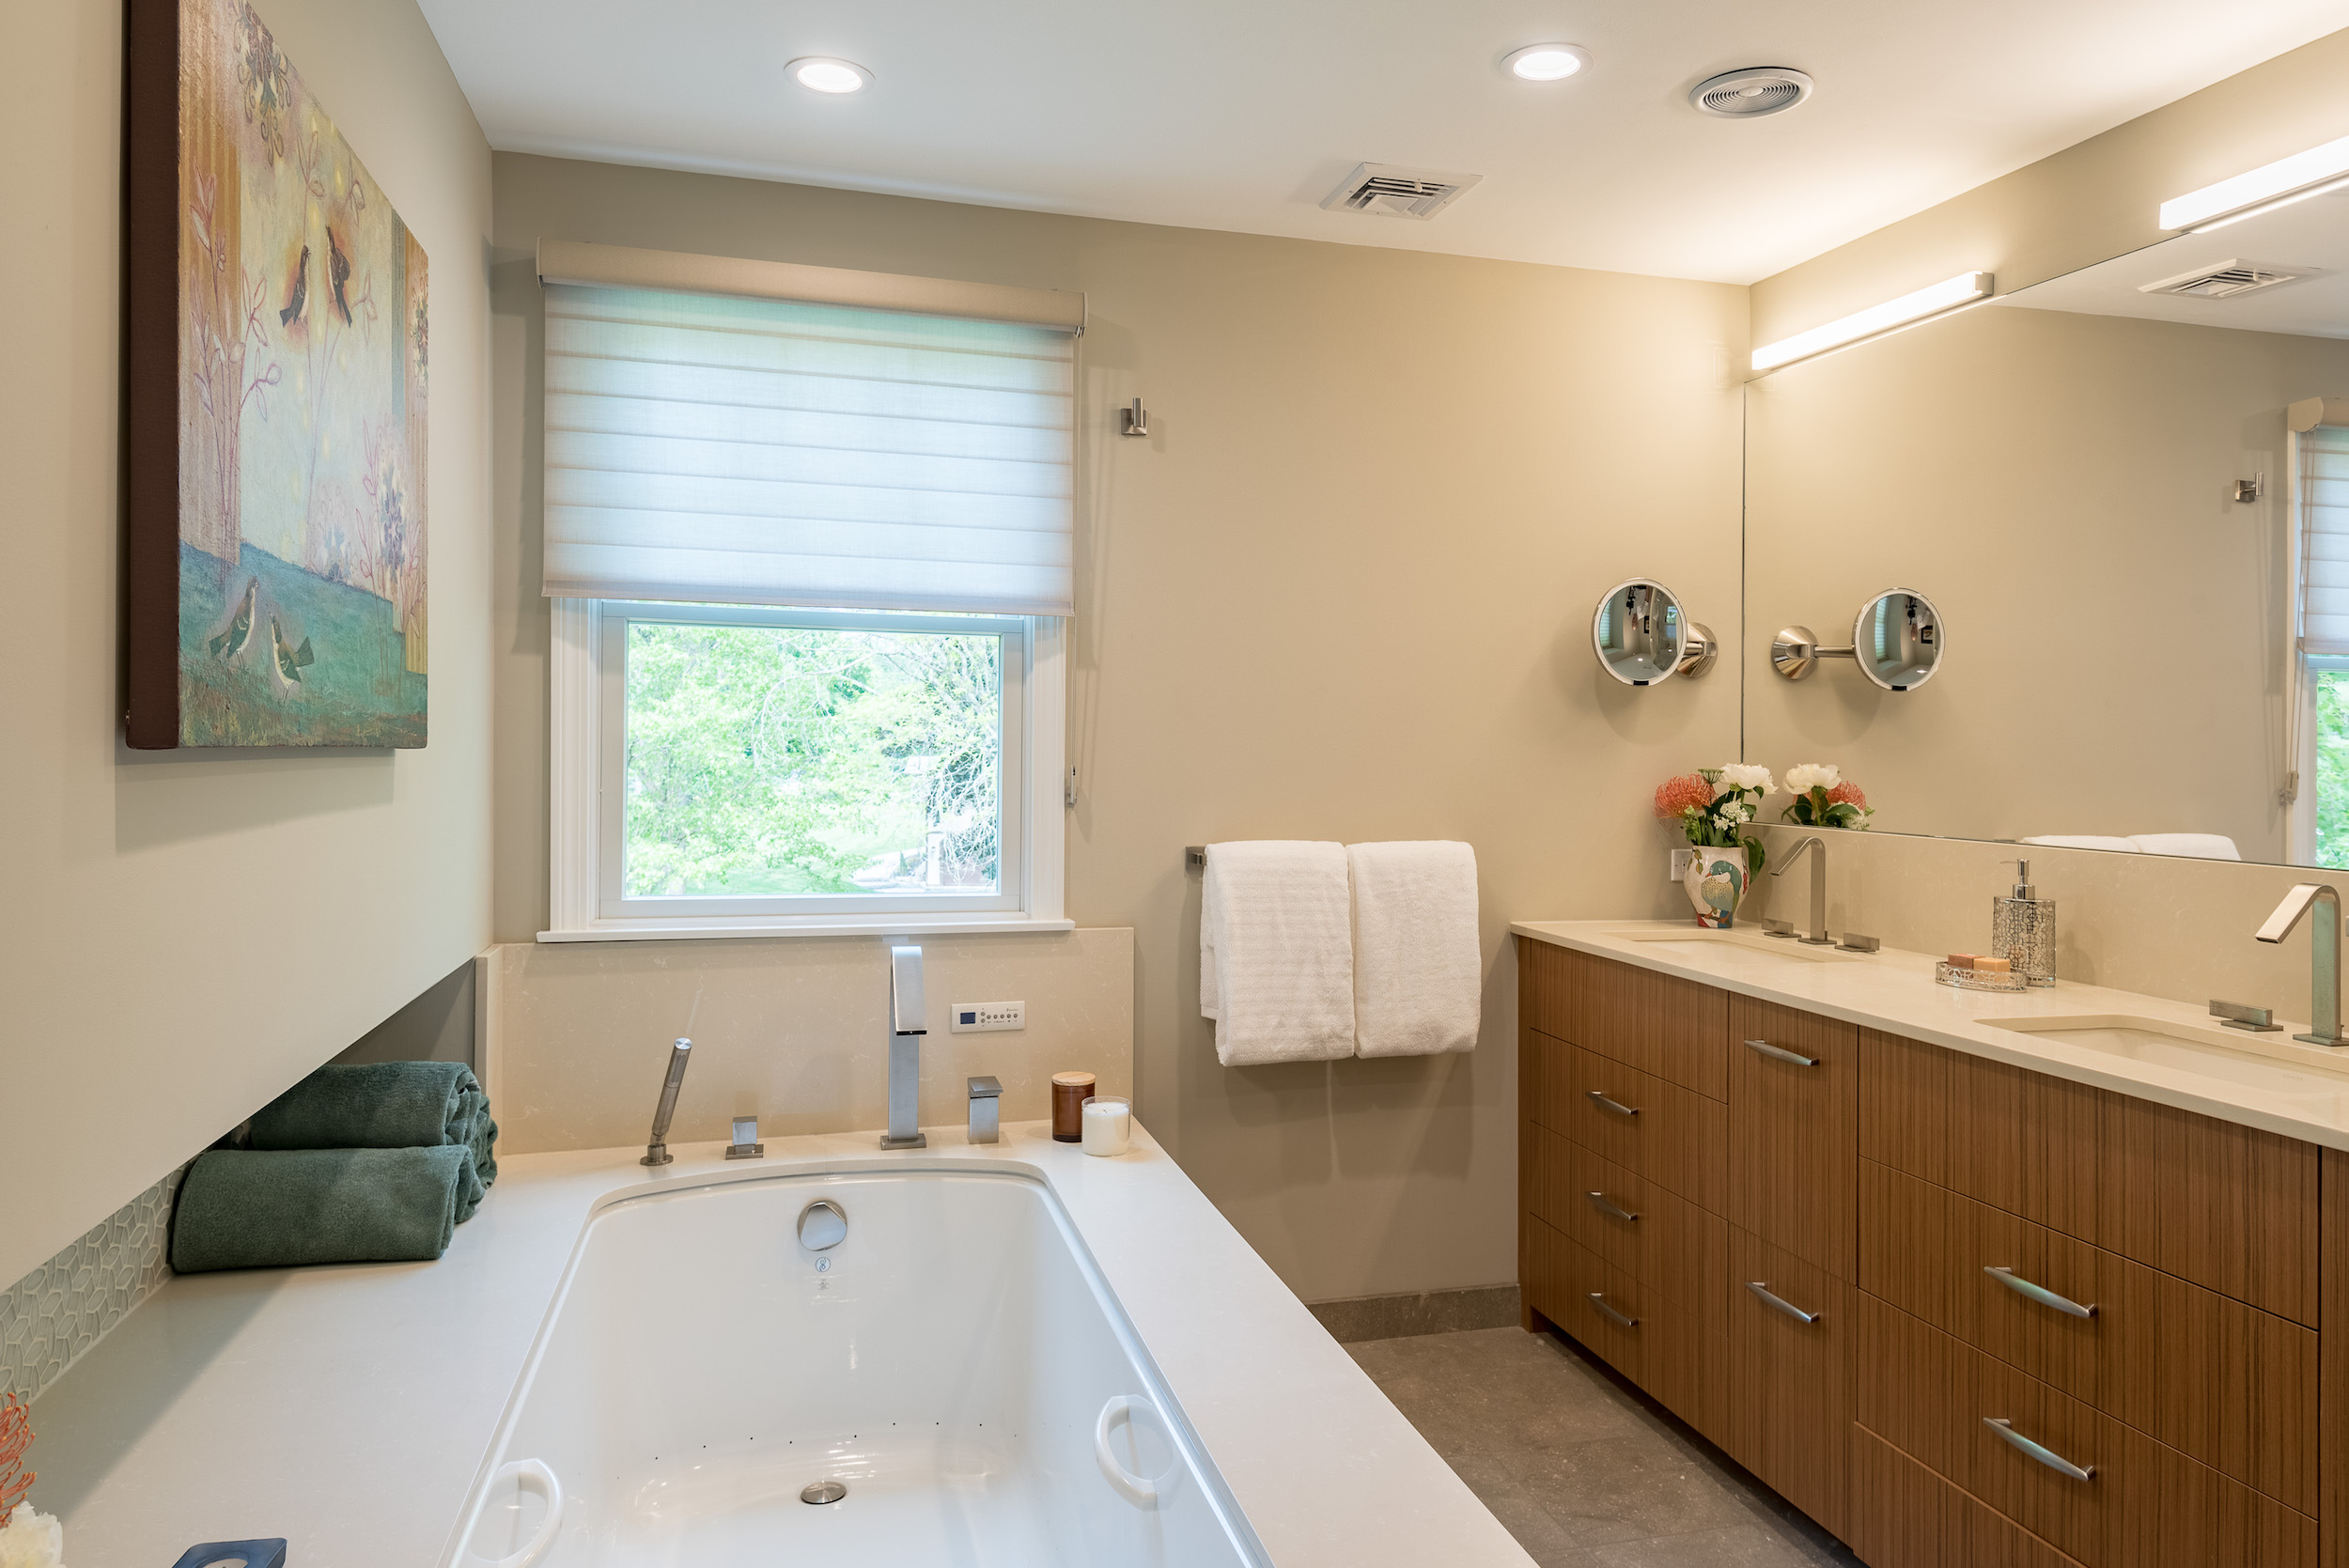 3-KitchenVisions-Master-Baths-Lincoln-3.jpg